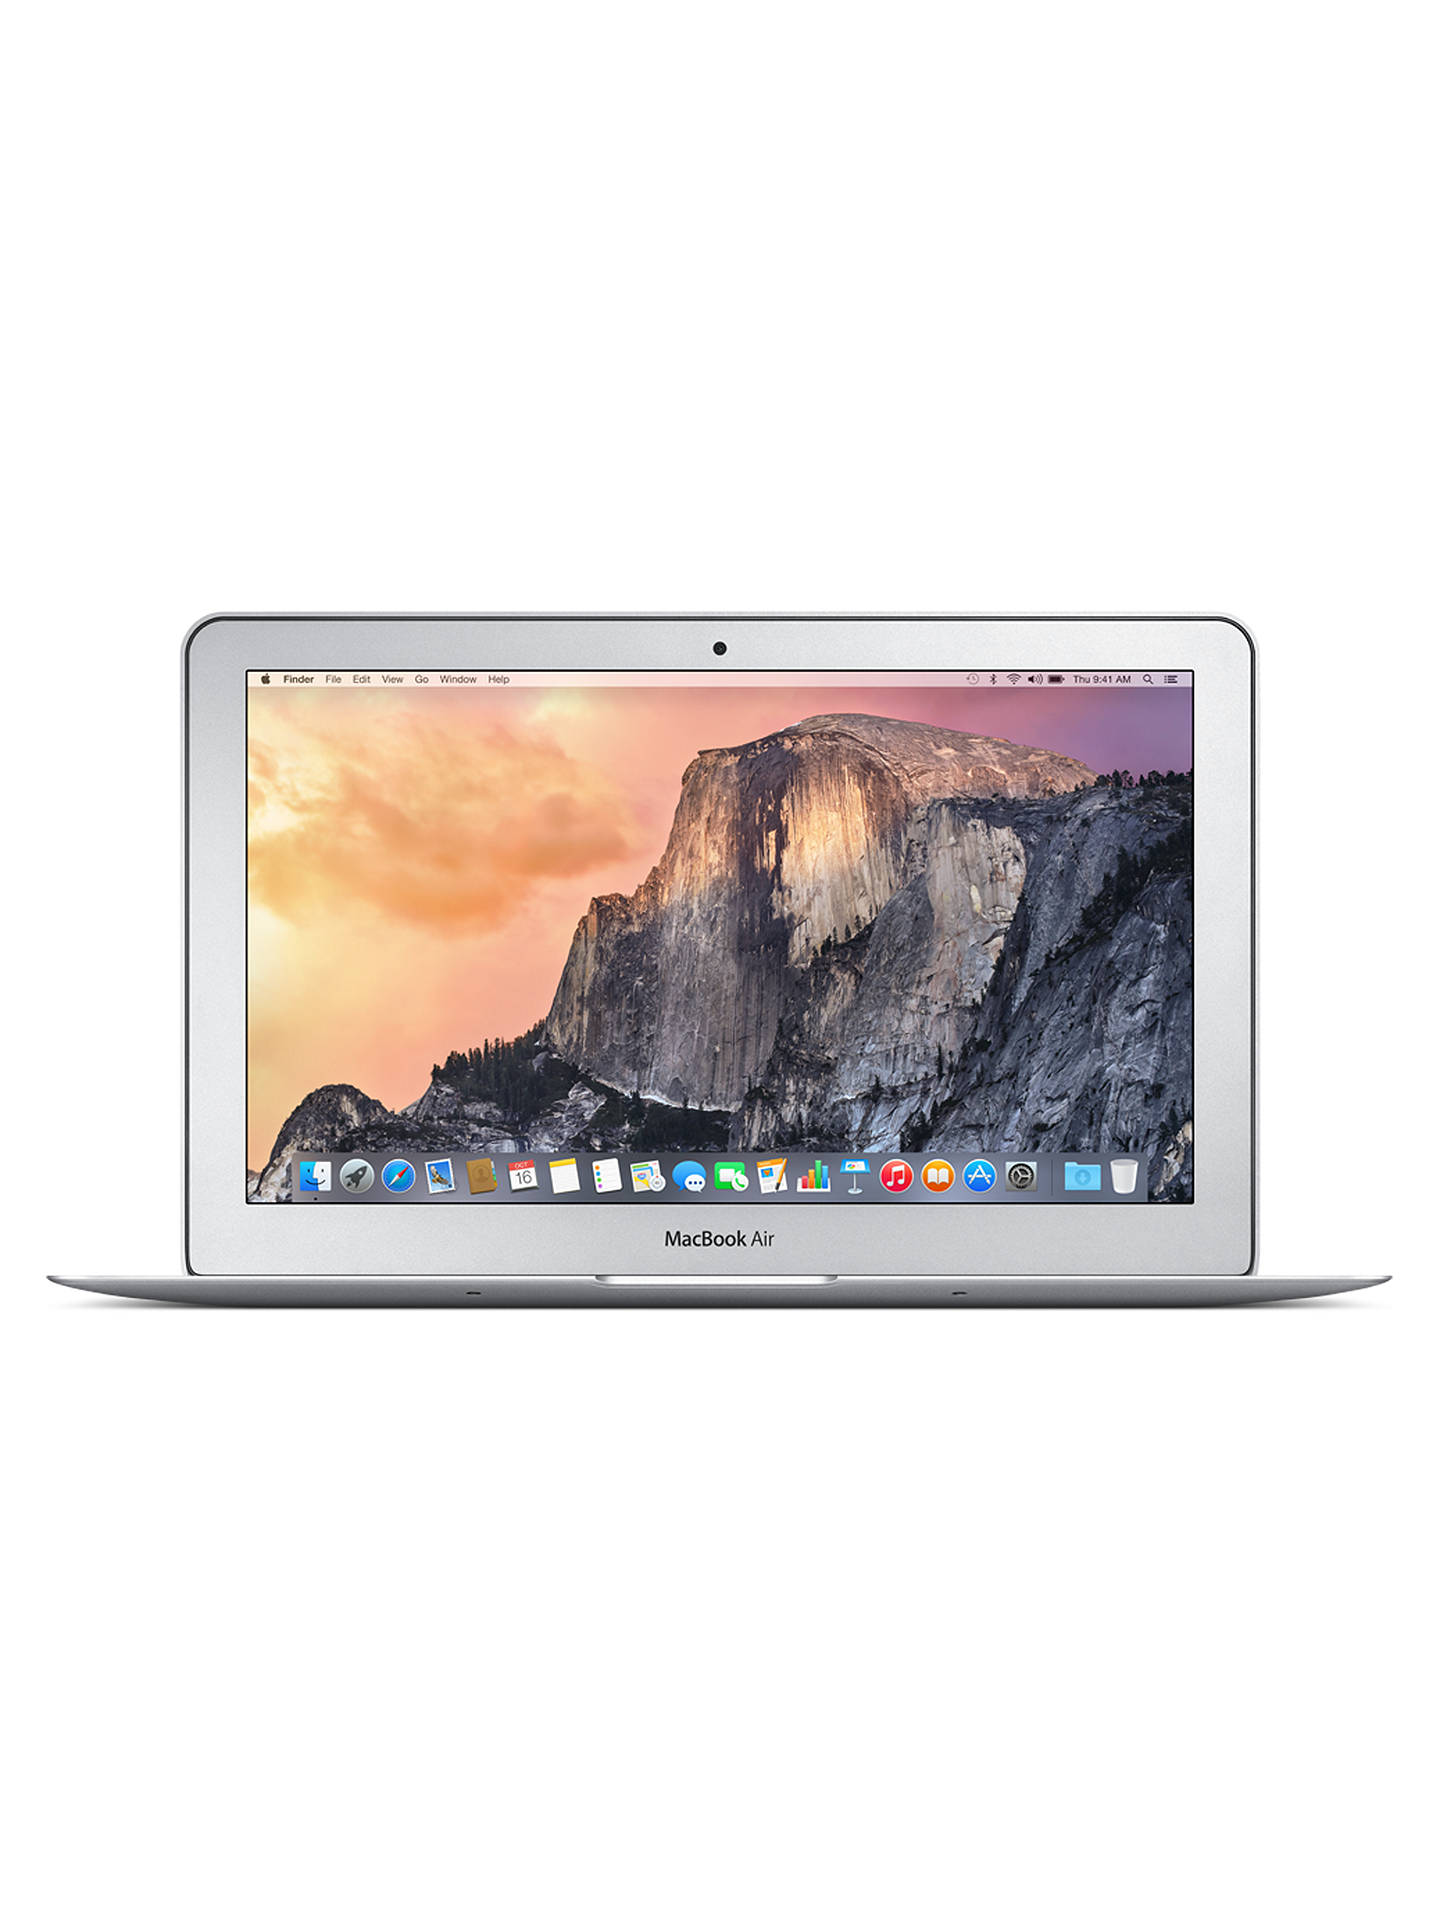 "Buy Apple MacBook Air, MD711B/B, Intel Core i5, 128GB Flash Storage, 4GB RAM, 11.6"" Online at johnlewis.com"